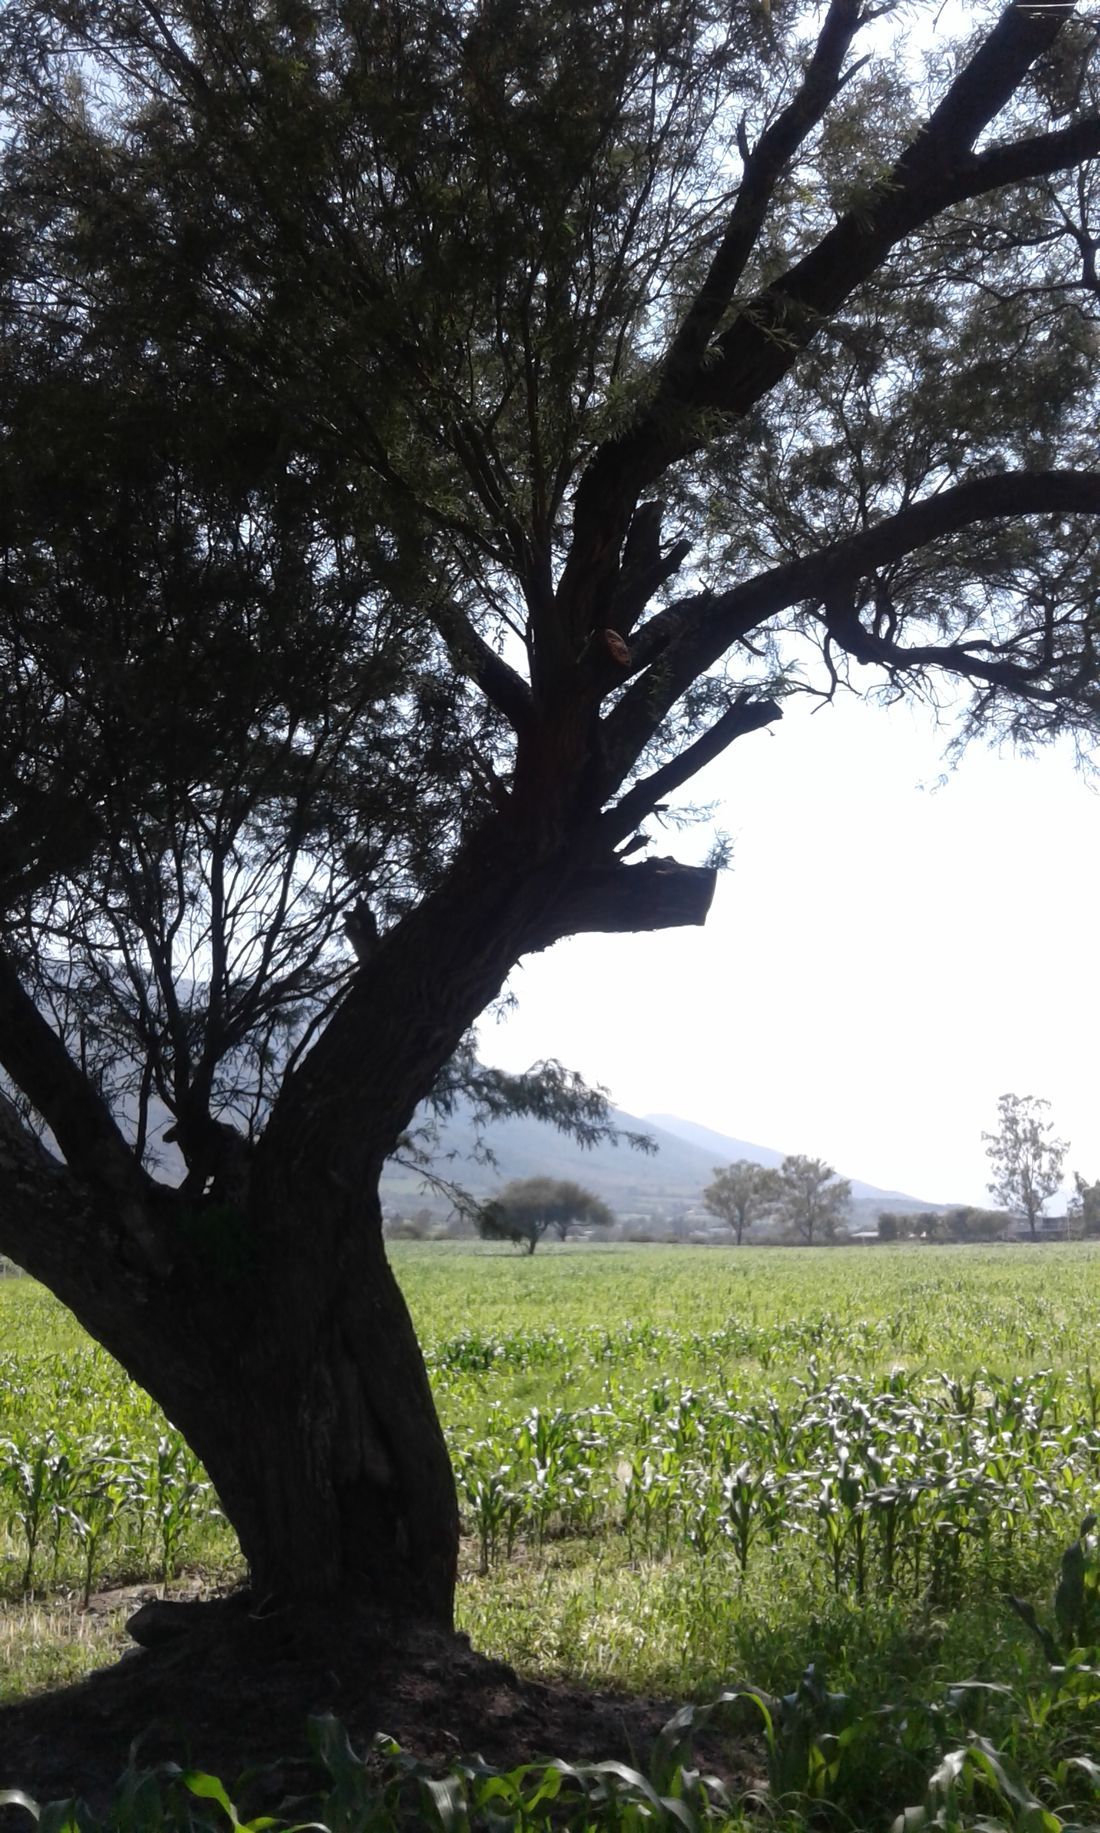 Tree Growth Field Rural Scene Agriculture Landscape Sky Grass No People Beauty In Nature Outdoors Nature Day Scenics Ixtlahuacan México. Mezquite Maize Maize Field Maizal